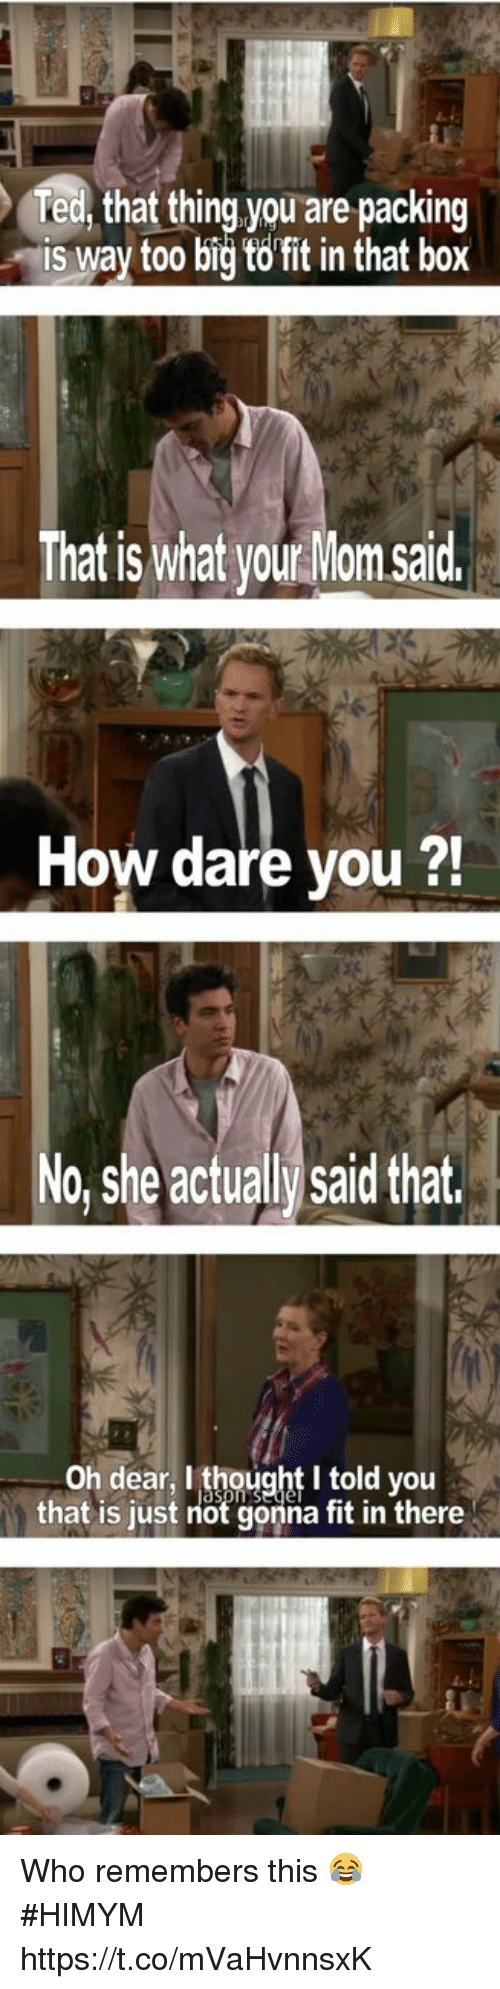 Memes, Thought, and Mom: fed, that thing you are packing  is way to0 bidtofit in that box  That is what your Mom said  21  How dare you ?  No, she actualy saild that.  Oh dear, I thought I told you  that is just not gonna fit in there Who remembers this 😂 #HIMYM https://t.co/mVaHvnnsxK